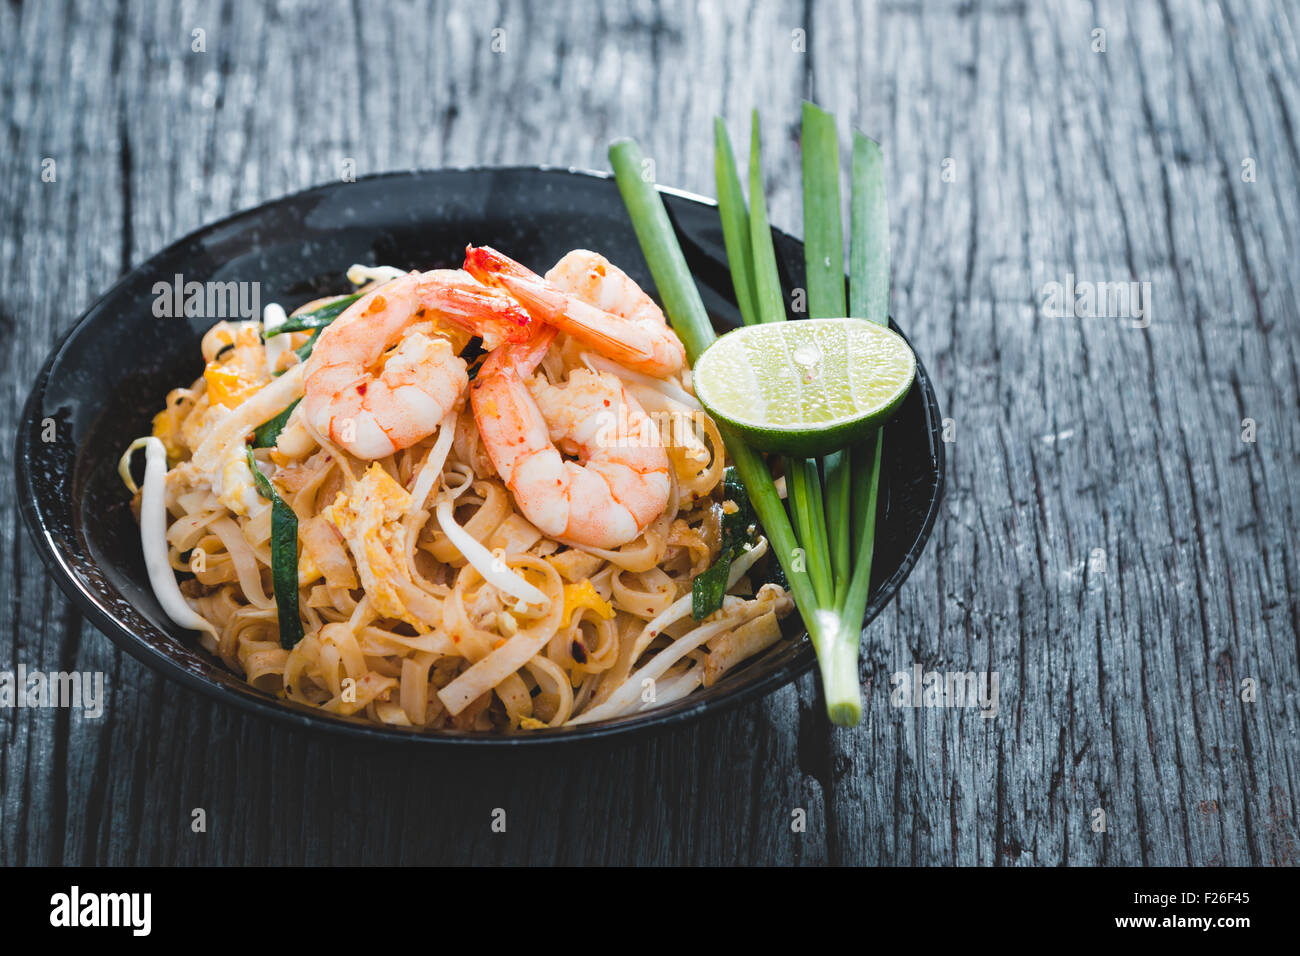 "Thai Fried Noodles ""Pad Thai"" with shrimp and vegetables Stock Photo"